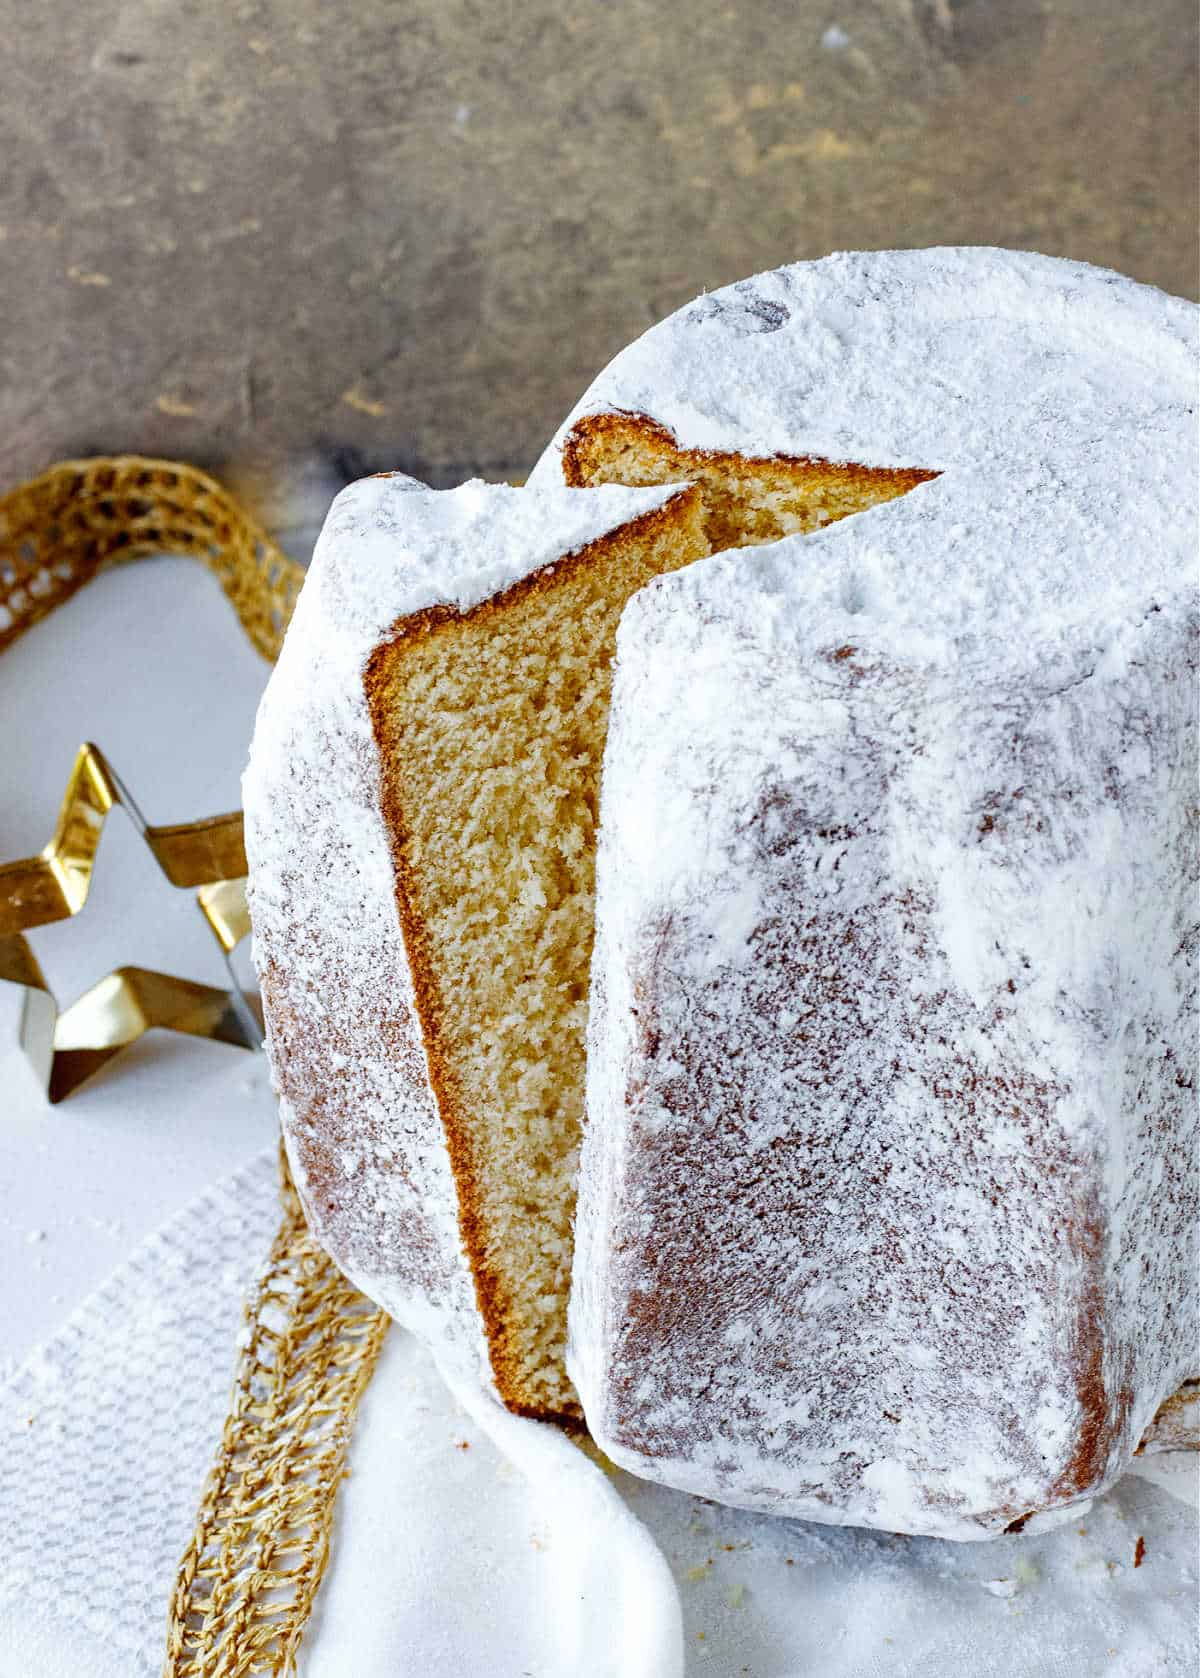 Top view of slice coming out of a whole pandoro bread with powdered sugar; white gold surface and background